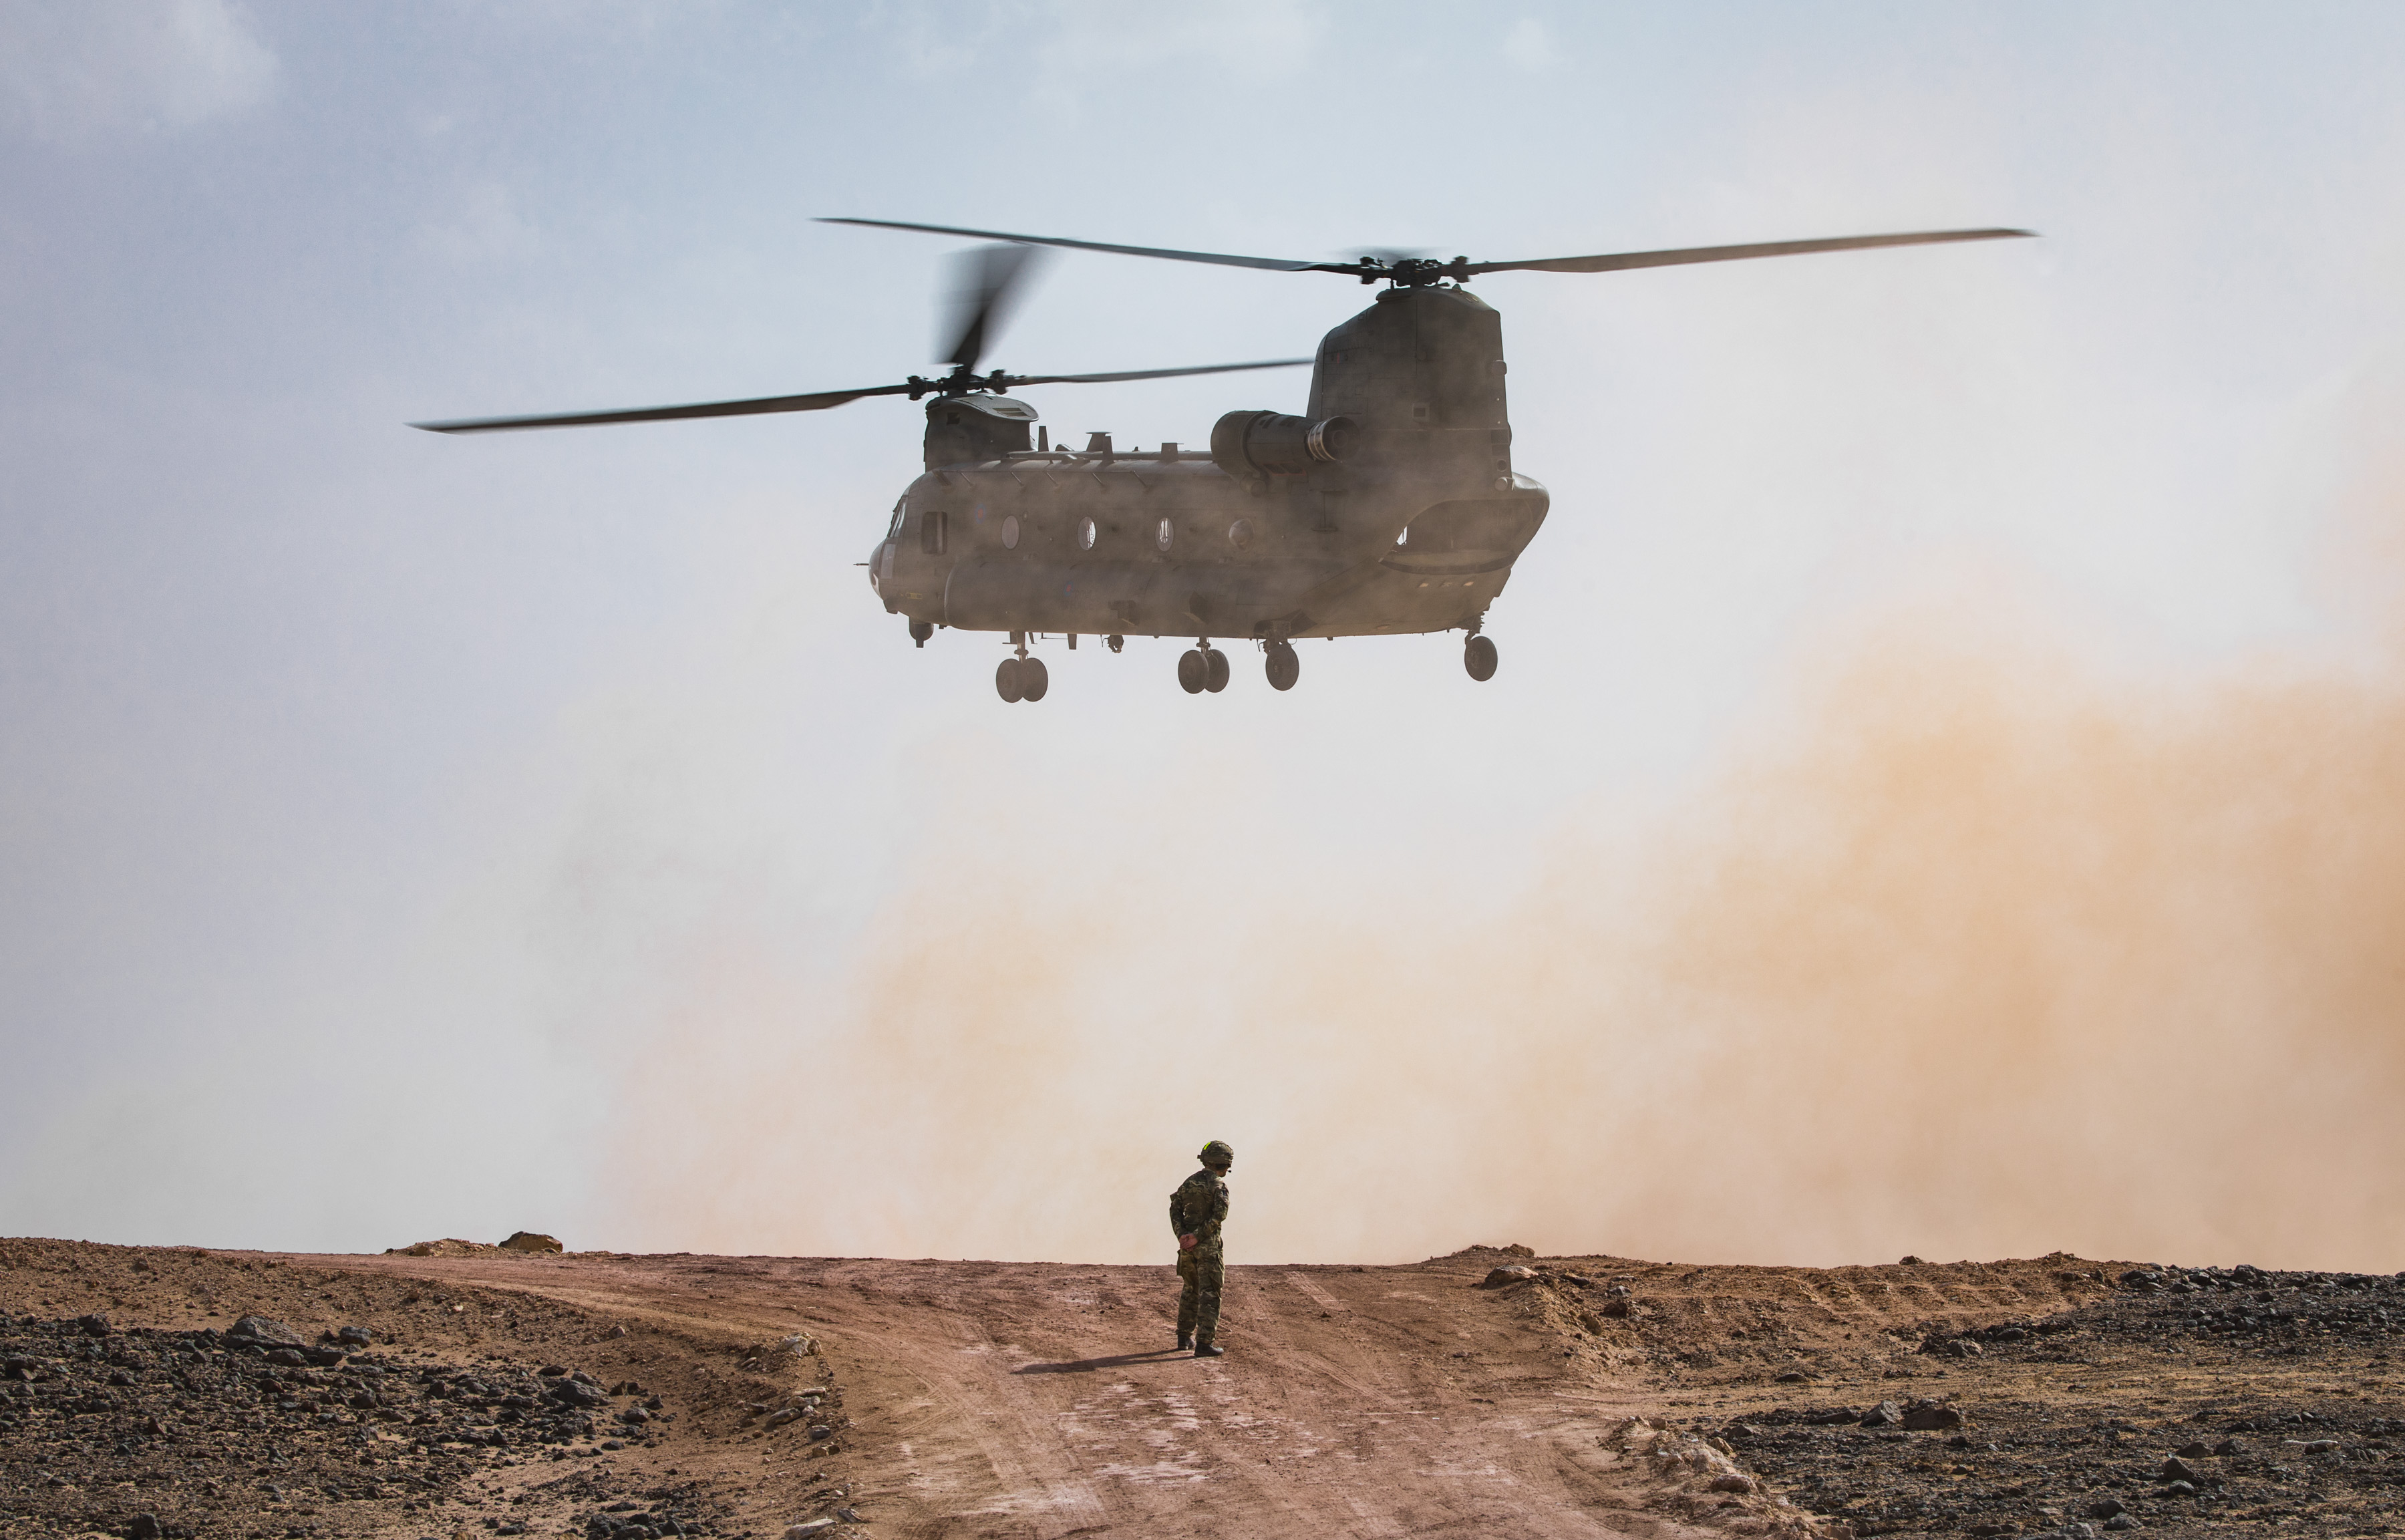 Pictured: A No. 27 Squadron RAF Chinook helicopter lands at the Fire Power Demonstration Area in order to collect the VVIPs and VIPs. British and Omani Militaries combined forces over the last few weeks on Exercise Saif Sareea 3, culminating in an awesome fire power demonstration lasting more than 30 minutes at two separate locations in Oman. On 3 Nov 18 a Fire Power Demonstration brought weeks of hard work together in a series of simulated attacks on targets. Streamed live to a VIP area in an inland location, an amphibious assault by Royal Marines and Omani troops onto a beach location in Eastern Oman with fast-roping from RAF Chinook helicopters of 27 Squadron, combined with Naval gunfire support formed the first element of the demonstration. The second phase, viewed by Omani Officers and Officials, Gavin Williamson the UK Secretary of State for Defence, and the Chiefs of UK Defence Forces, started after Omani Air Defences shot down a 'rogue' drone aircraft. This was followed closely by various attacks from the air and ground. This included airstrikes by RAF Typhoons, Omani F-16s, Omani Super Lynx and Army Air Corps Apache helicopters before Javelin anti-tank weapon firing destroyed more targets.